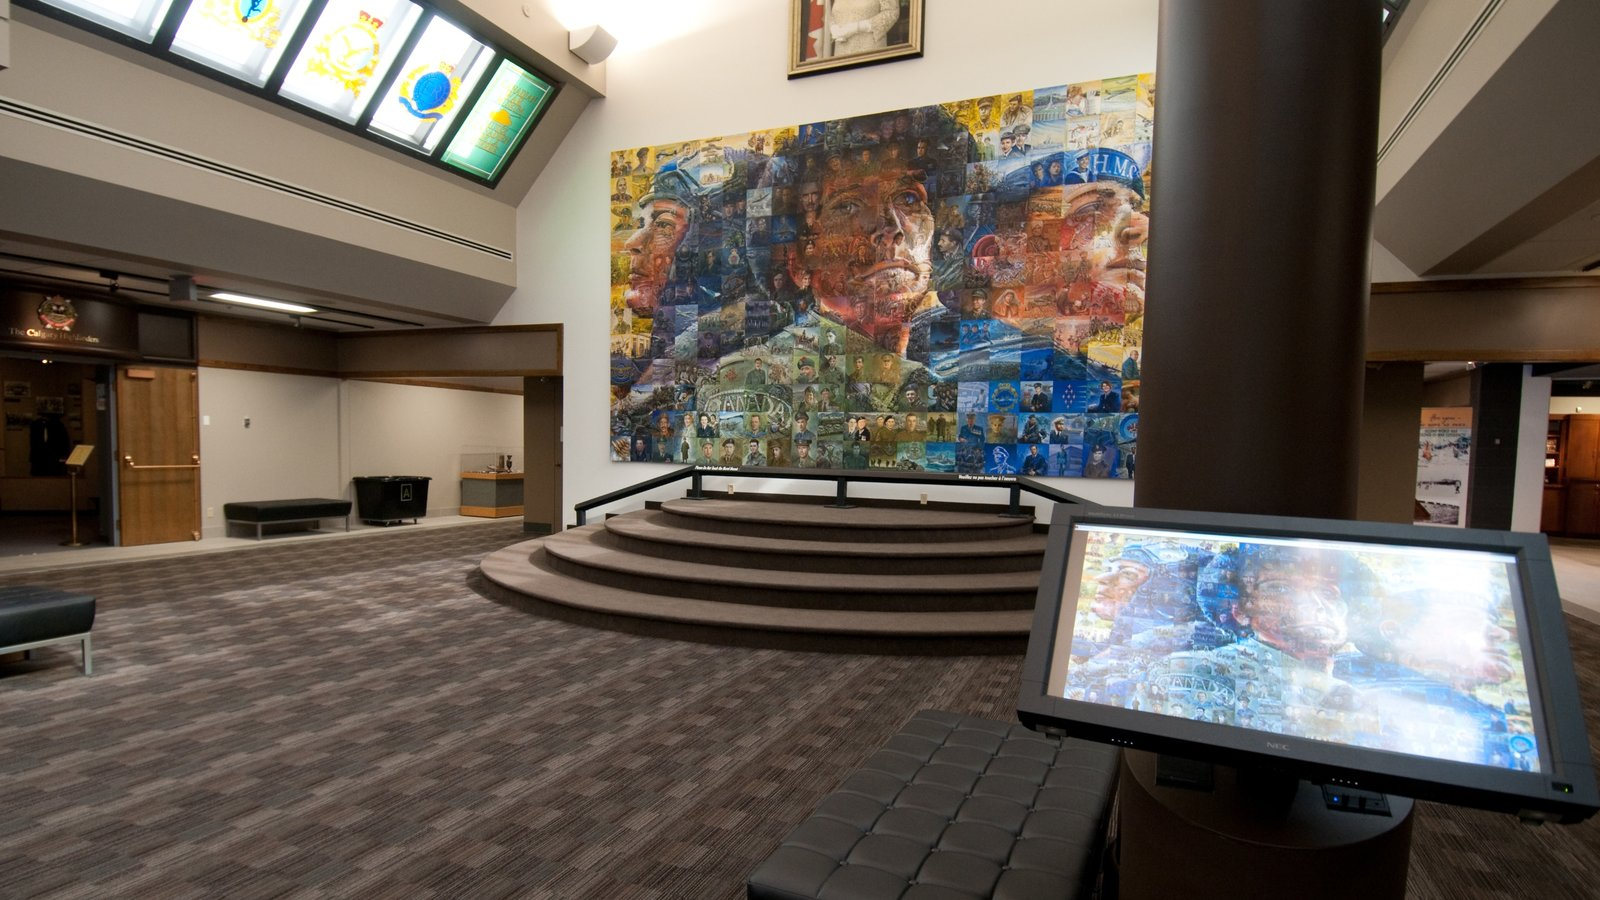 The Military Museums which includes interior views and art